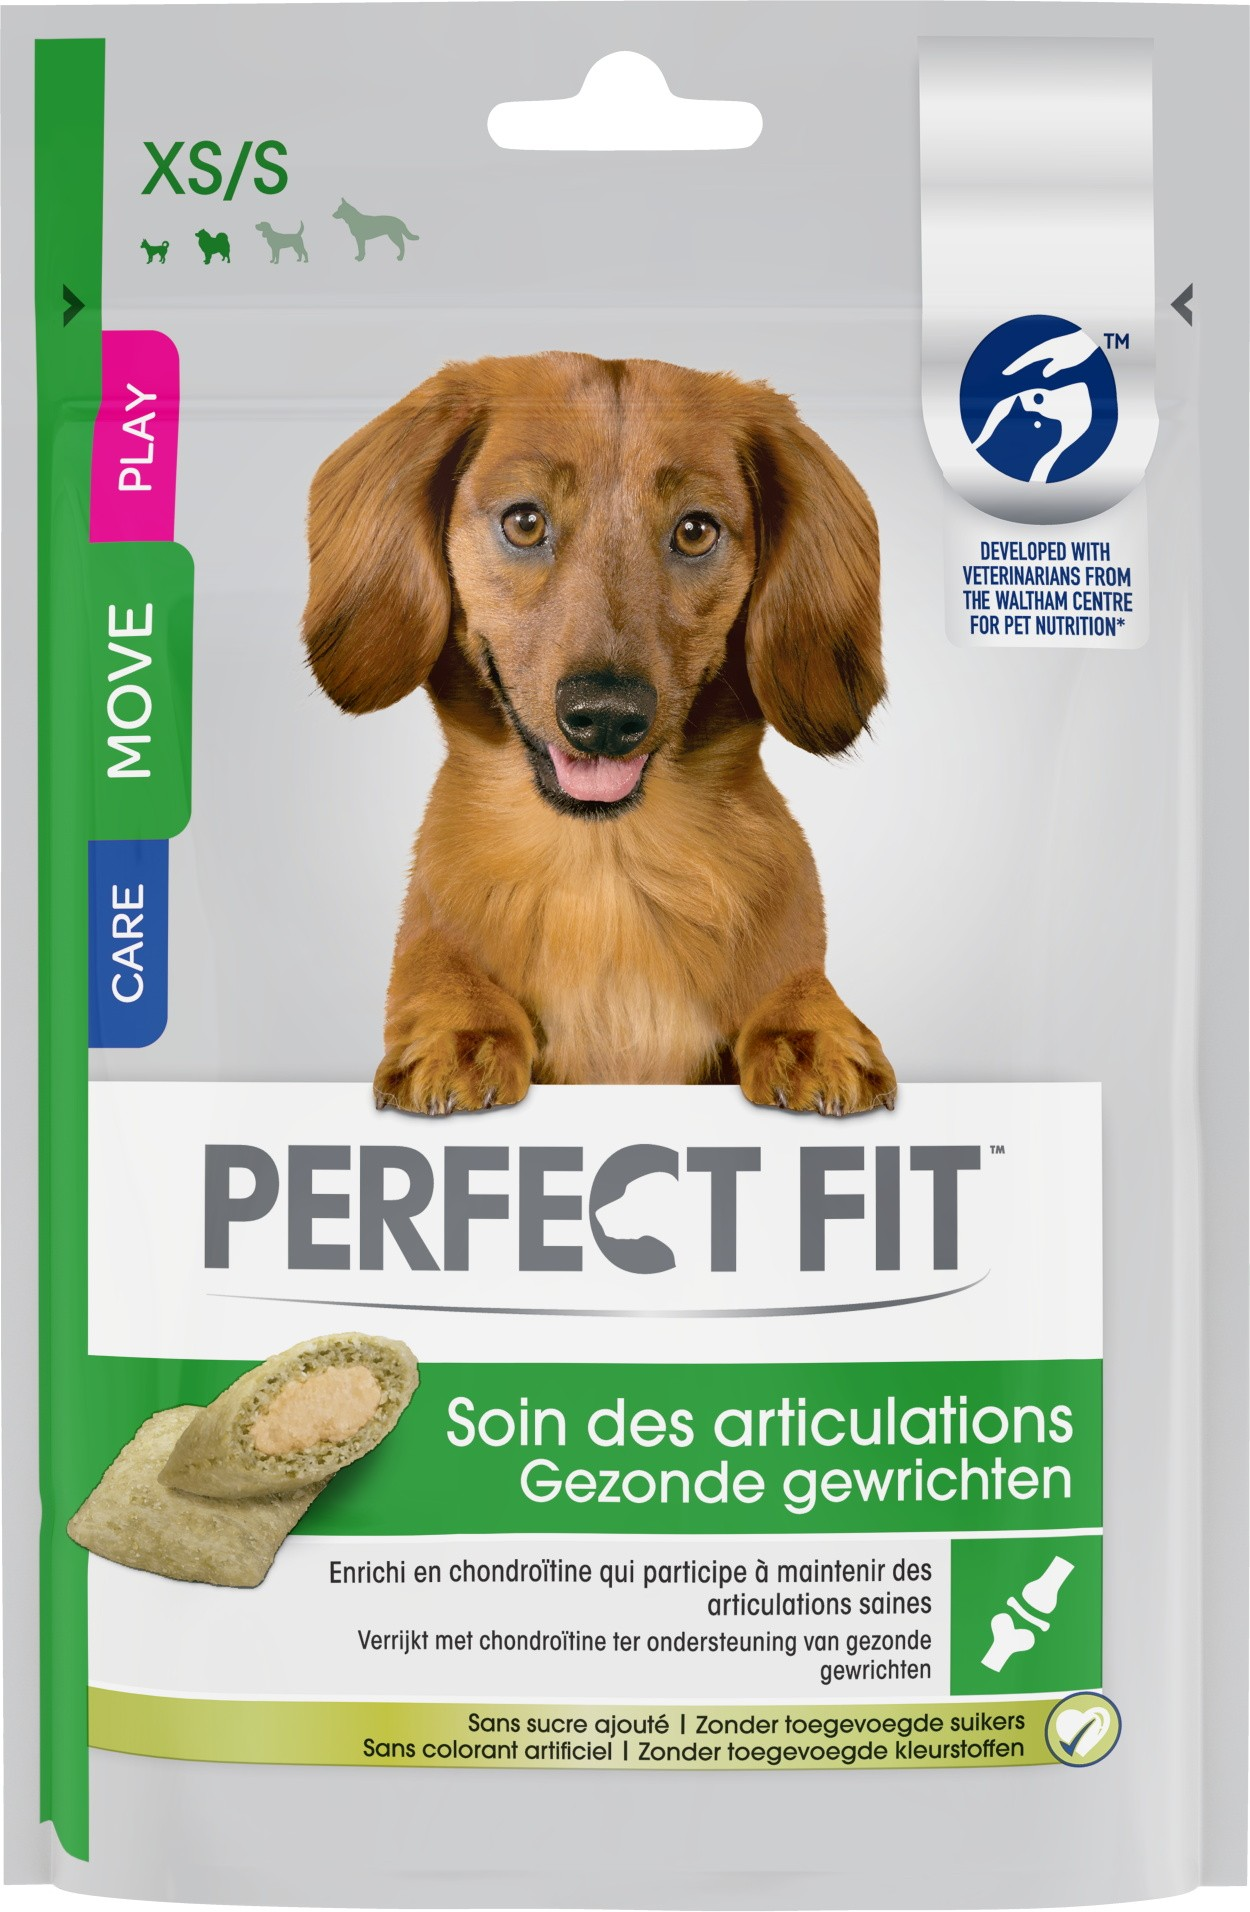 PERFECT FIT™ Soin des articulations